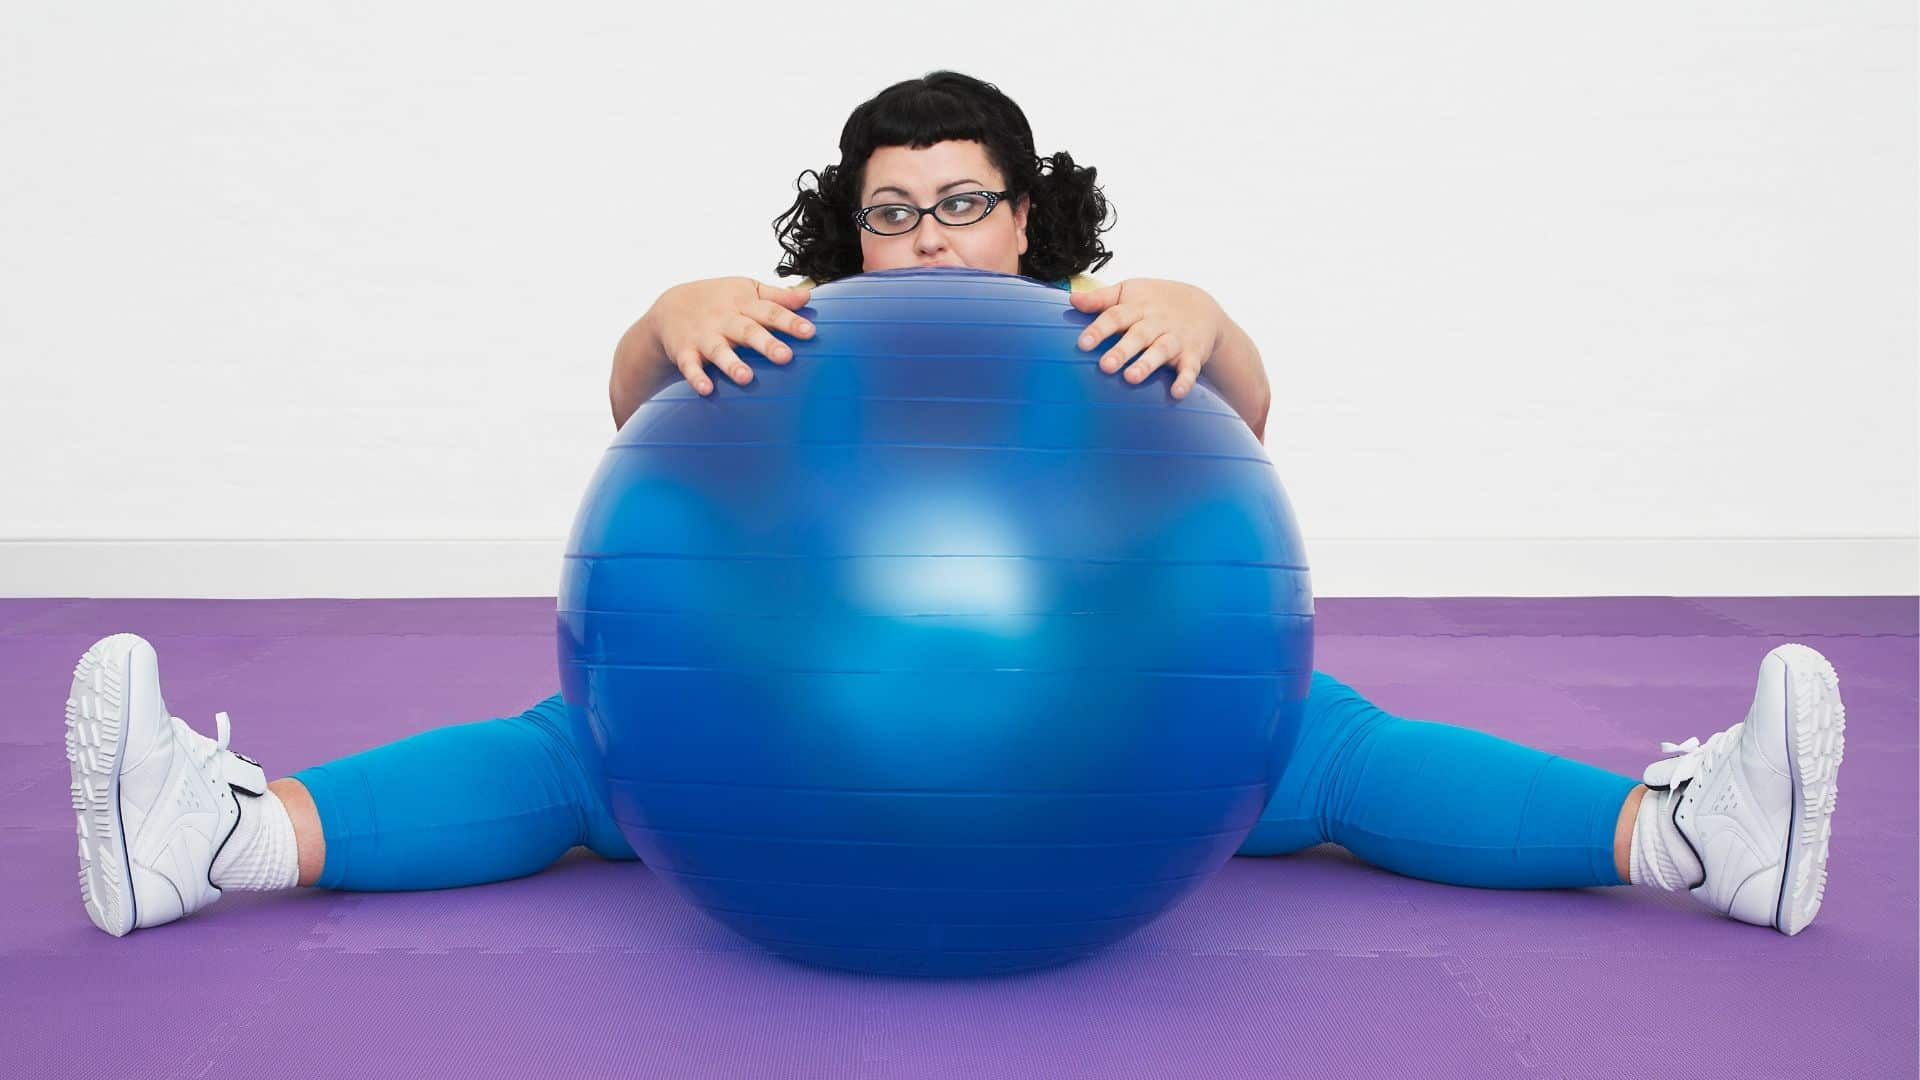 plus size woman at the gym with exercise ball